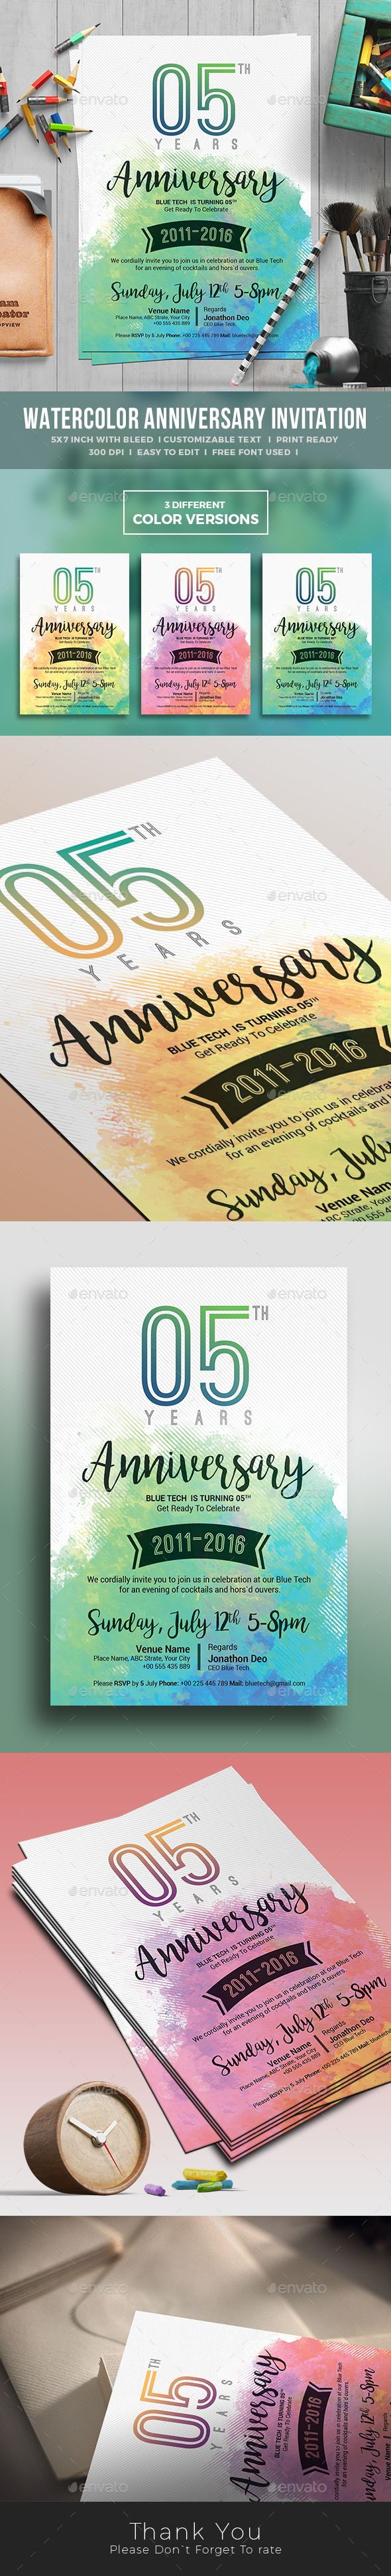 Artistic Water Color Poster Design Download Now https://graphicriver.net/item/anniversary-invitation/17789644?ref=themedevisers